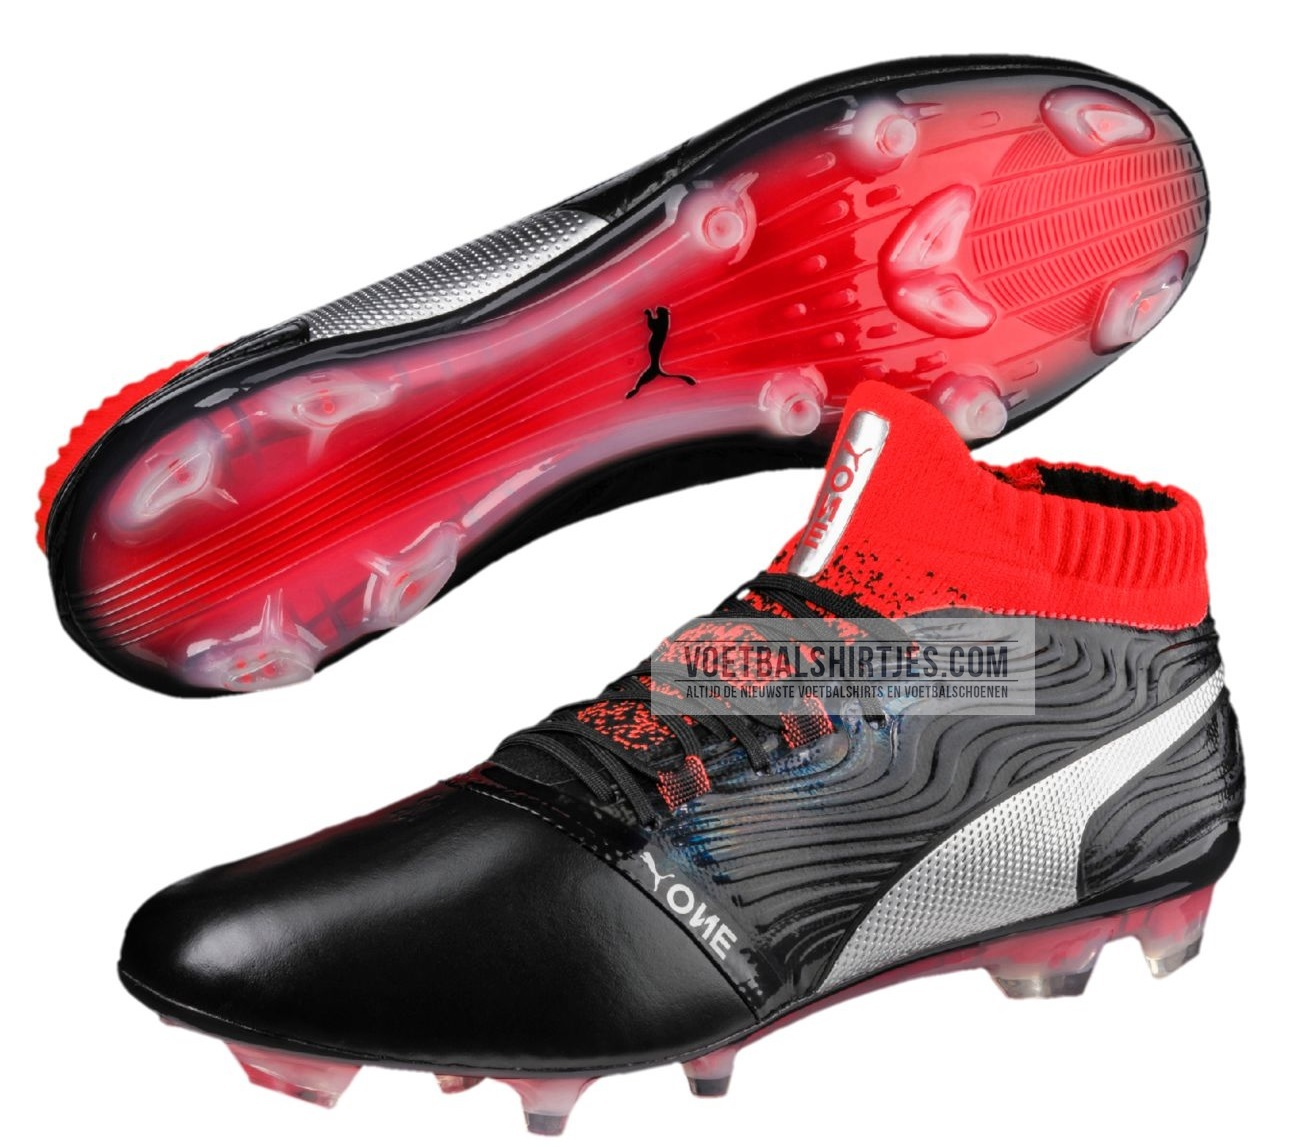 Puma One 18.1 black red blast